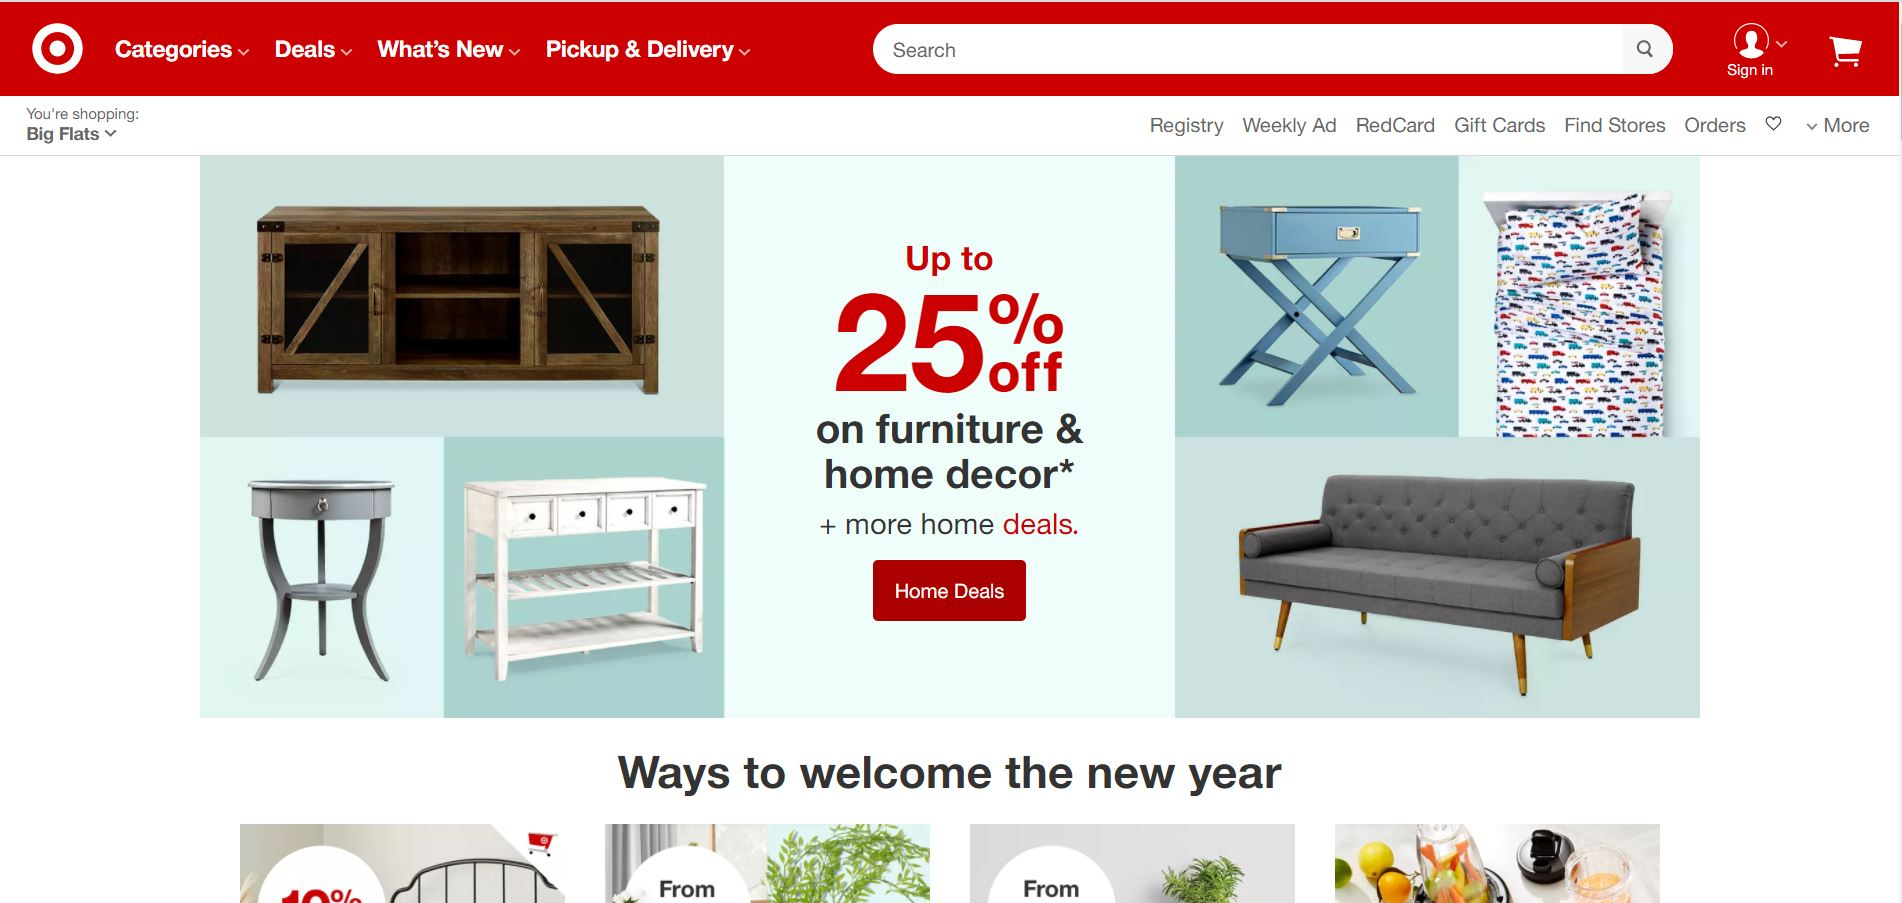 Official Web Page Snapshot of Target